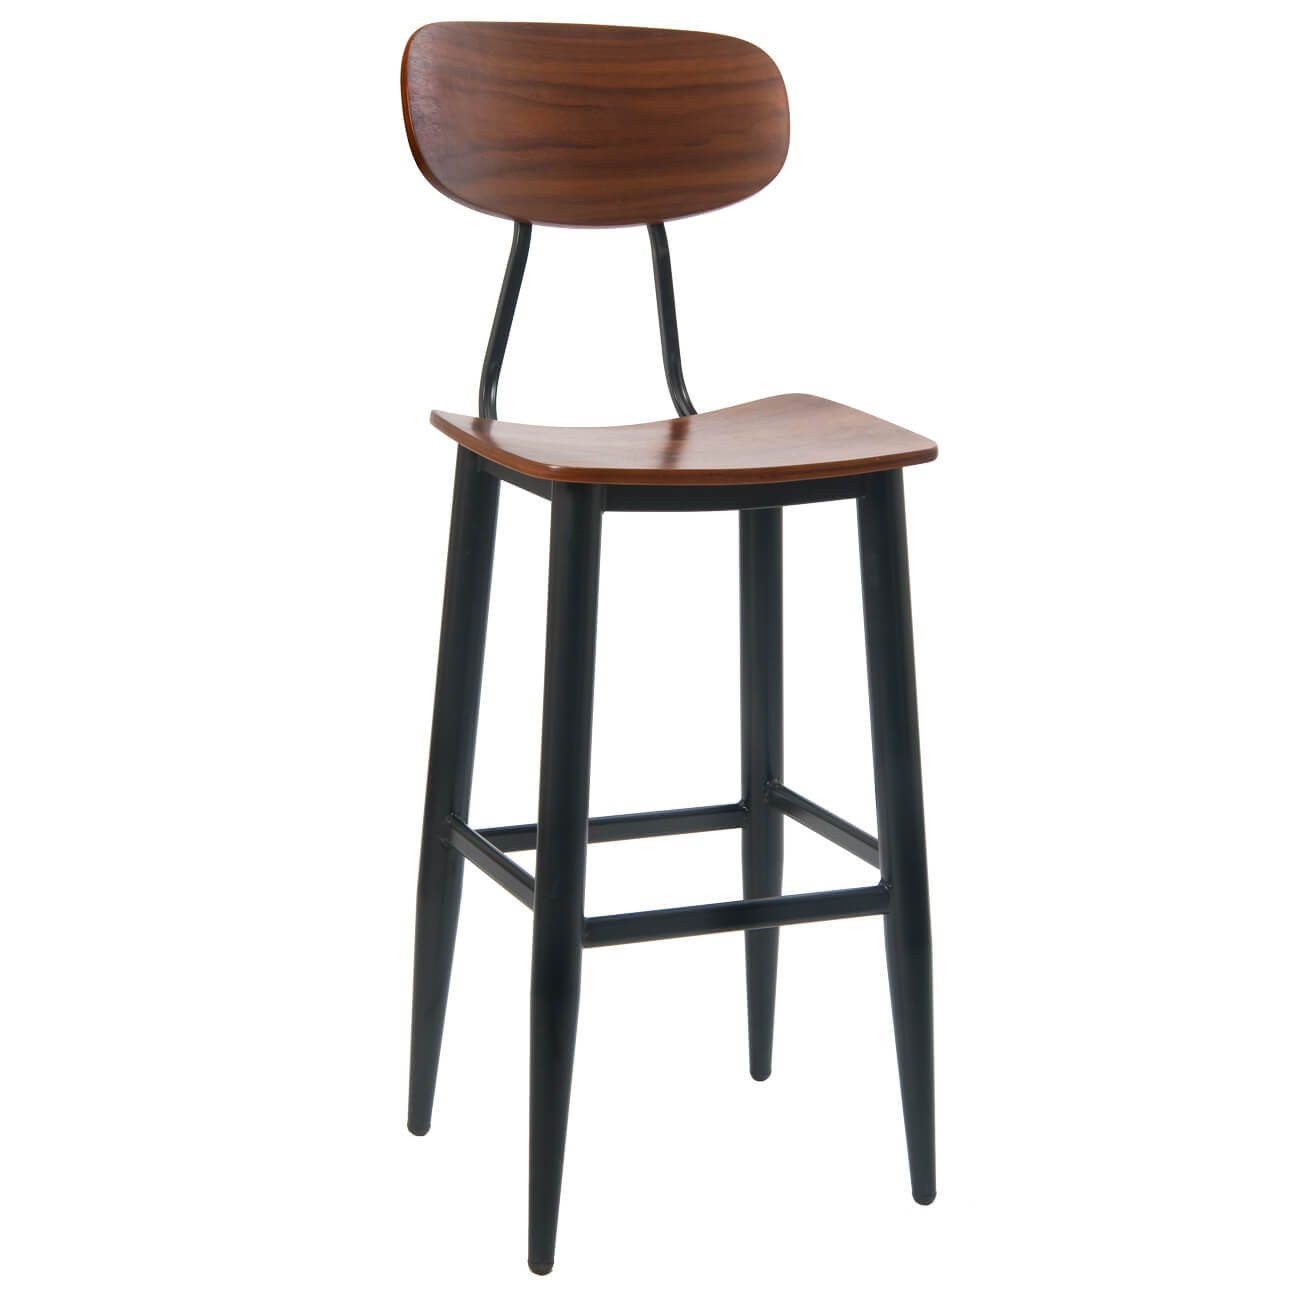 Basel Metal Bar Stool with Veneer Back and Seat